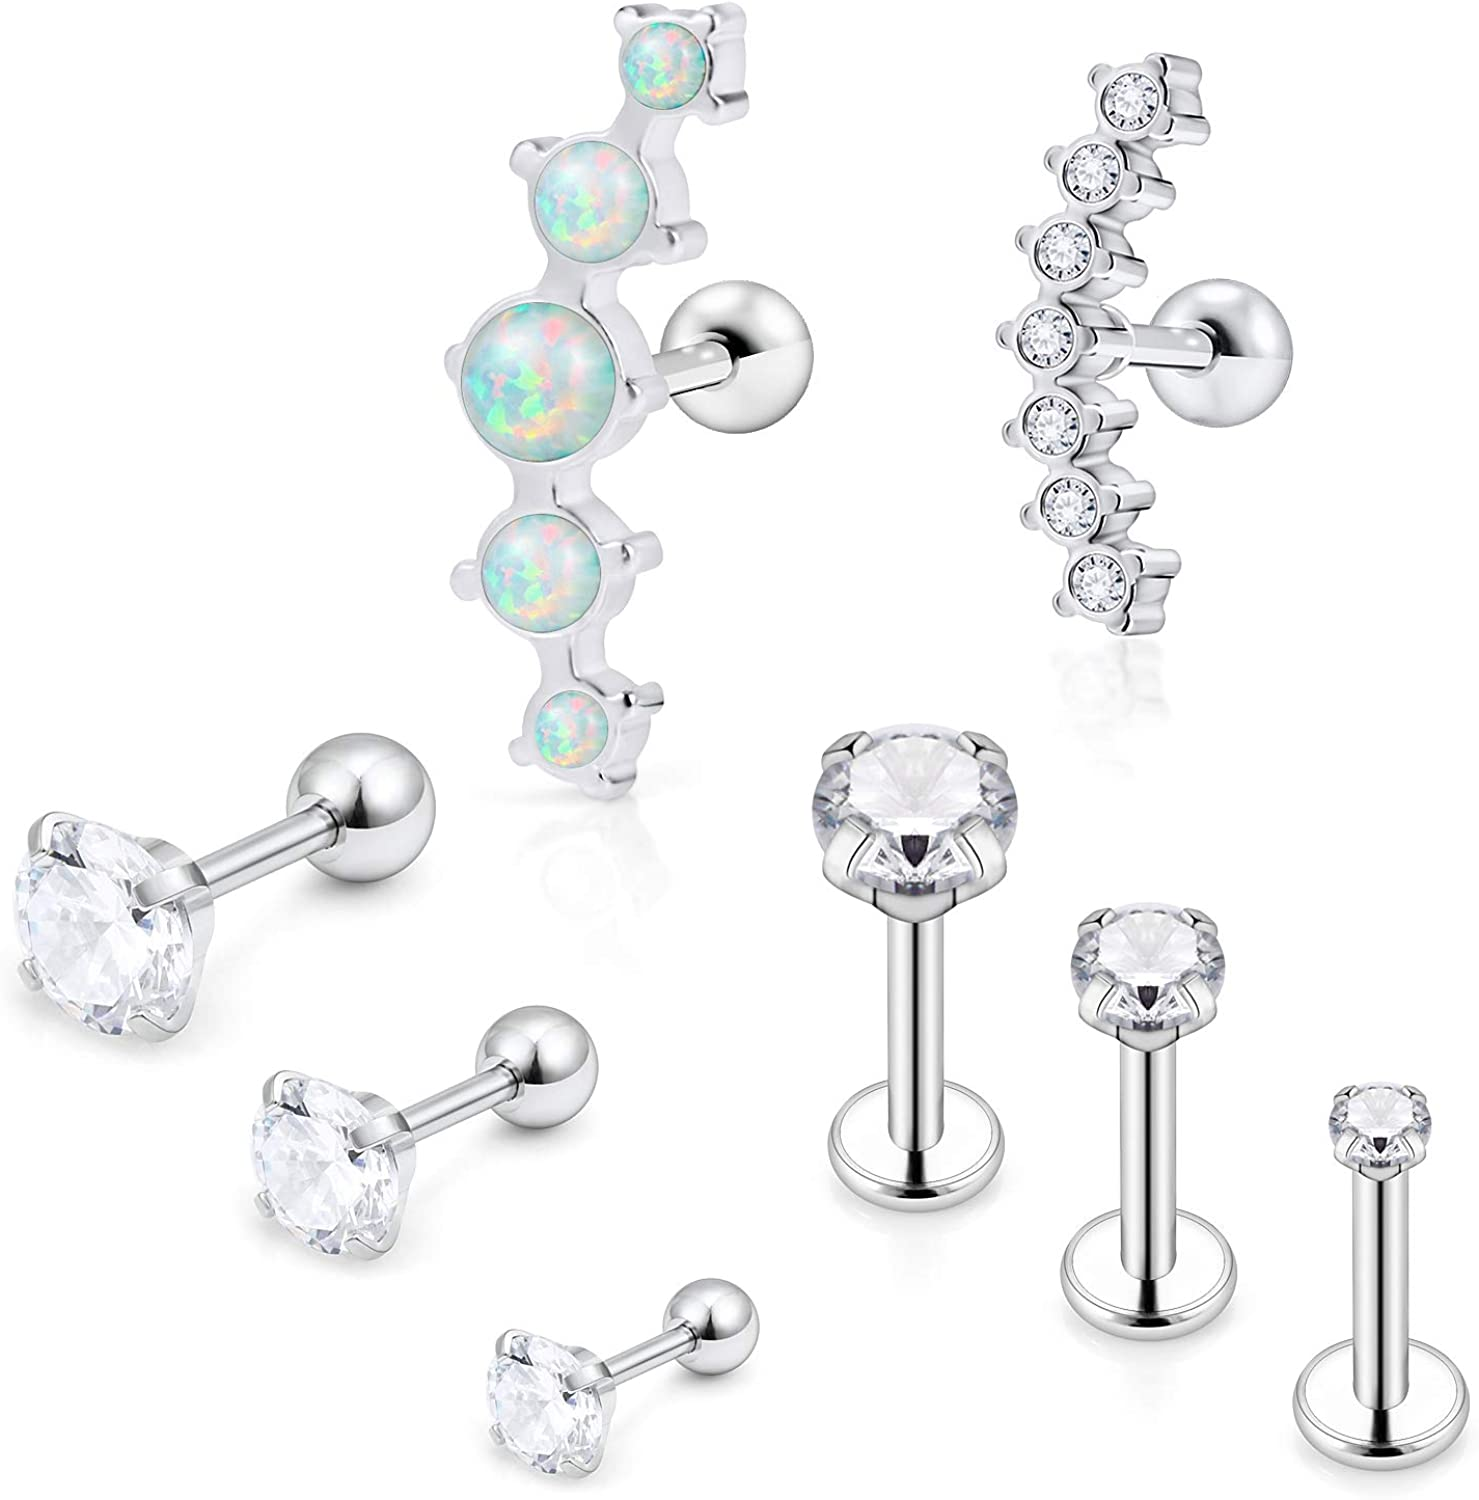 SCERRING 8PCS 16G Stainless Steel Helix Daith Cartilage Tragus Earrings Barbell Rings Stud Body Piercing Jewelry Opal Clear CZ Bar Length 6mm